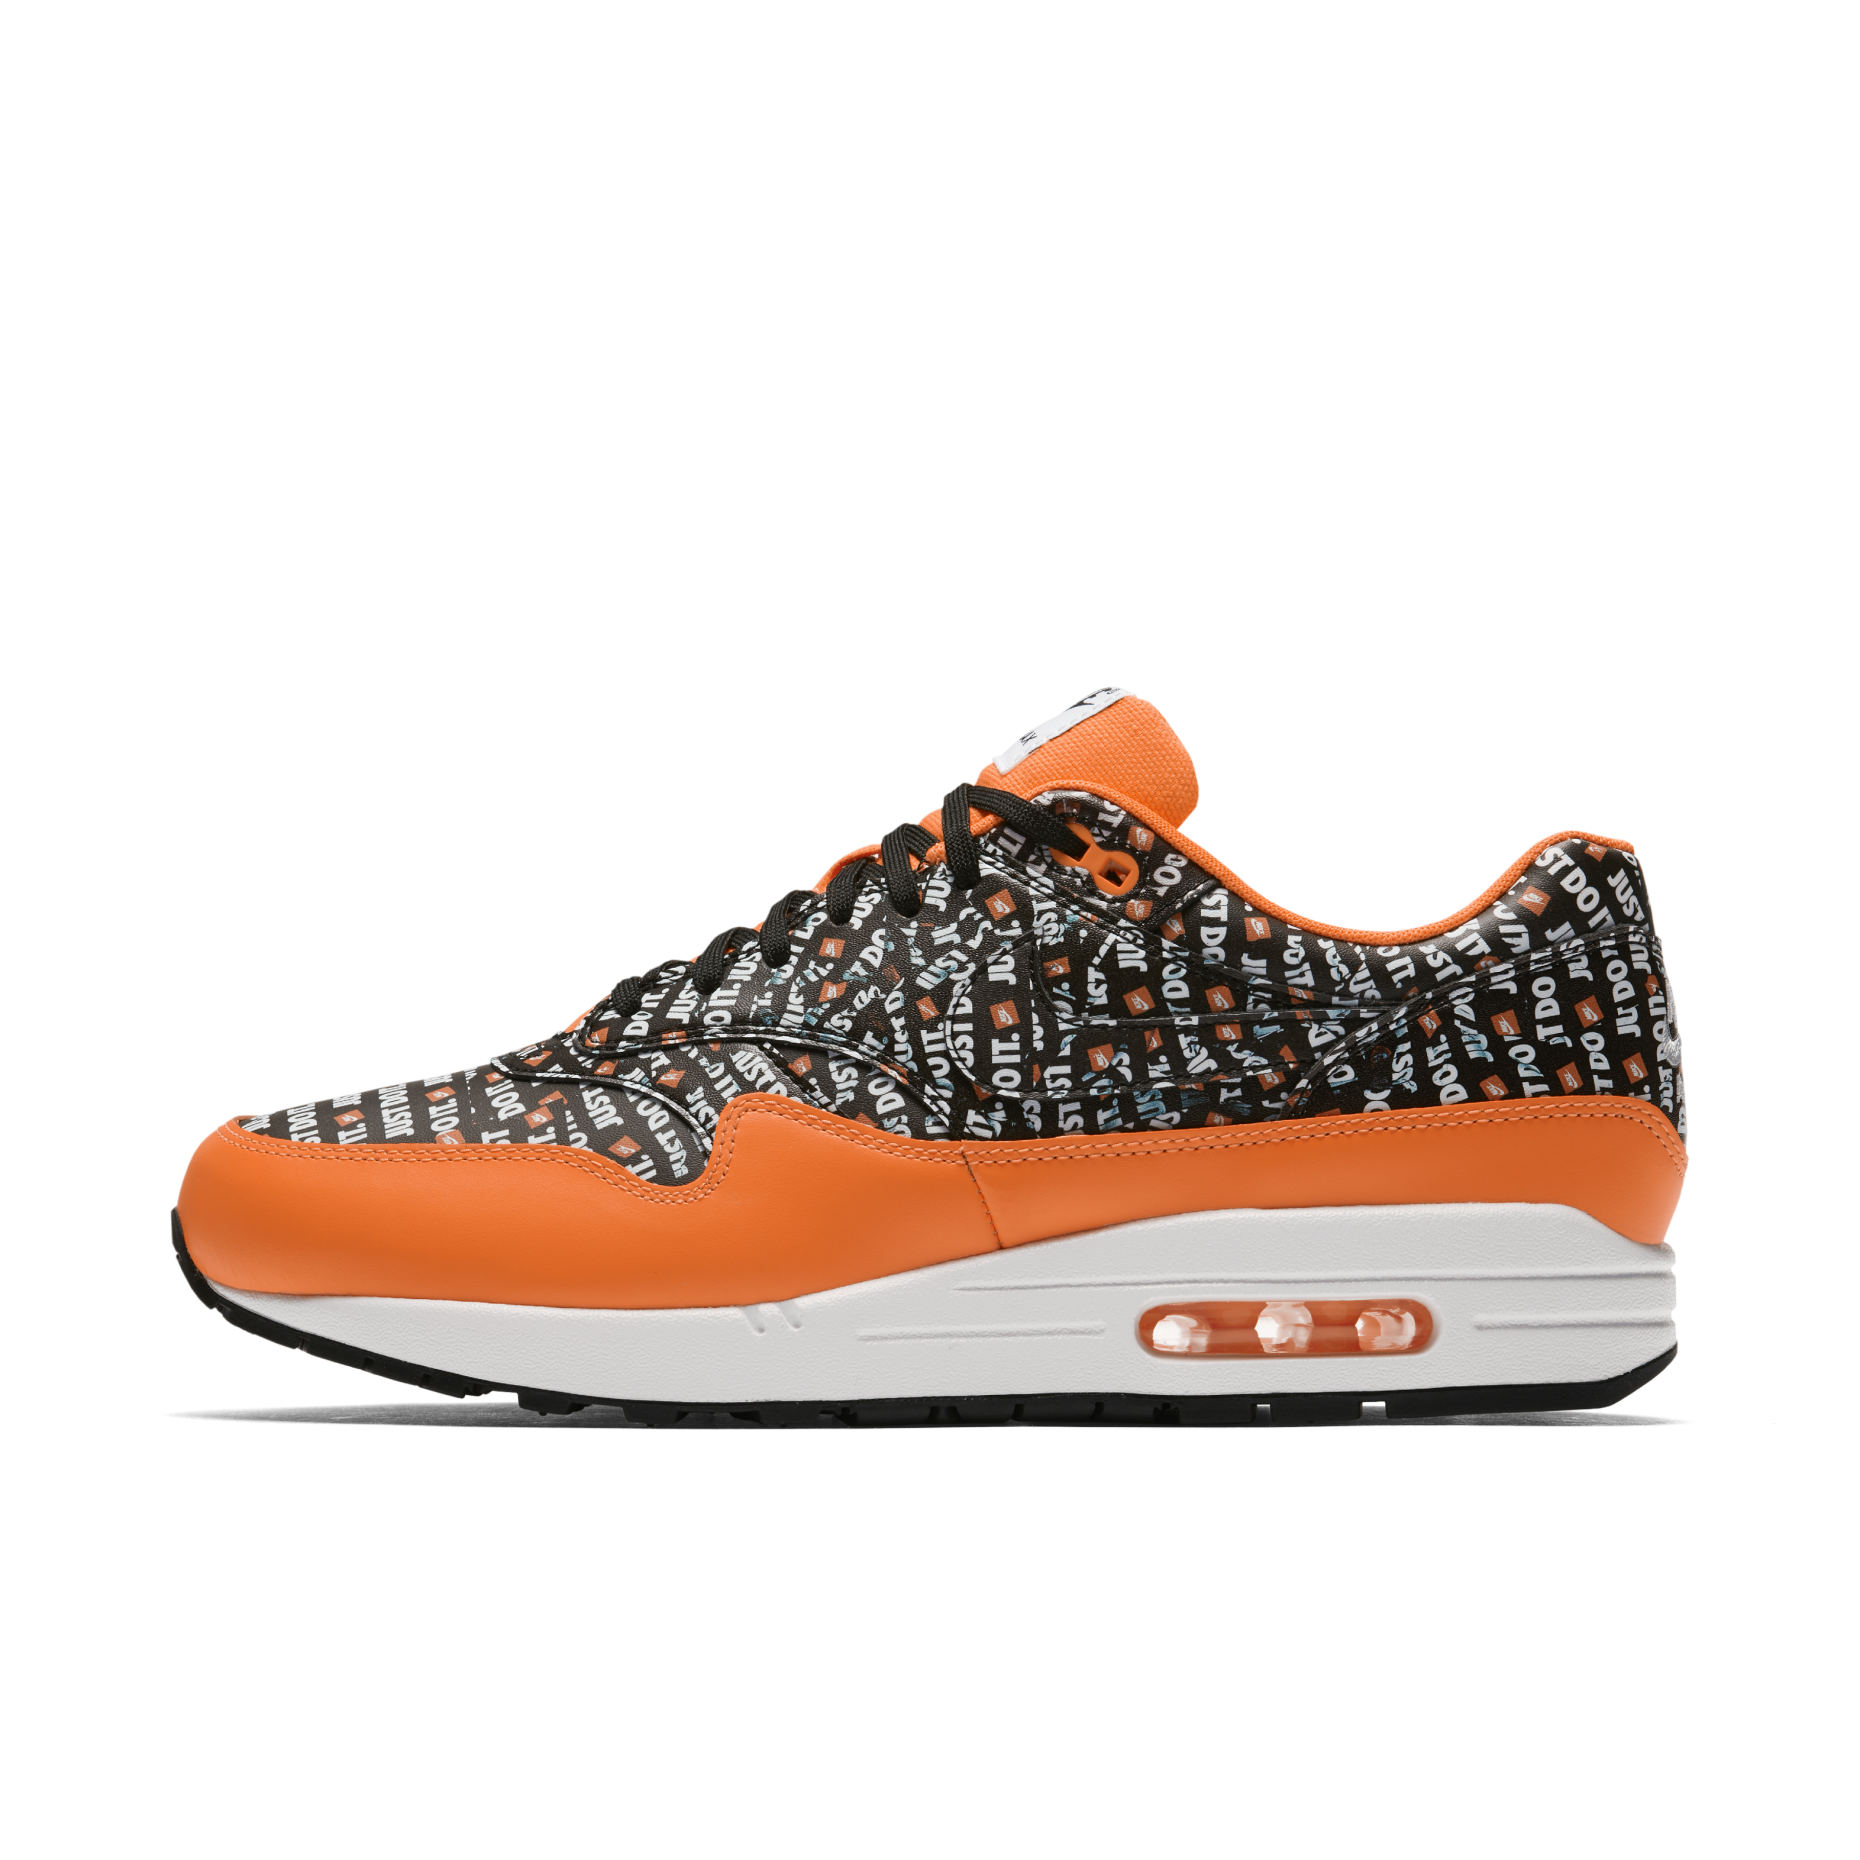 4637dffbb1a3a Nike Air Max 1 PRM Just Do It Orange Black 875844-008  1.png v 1535026442